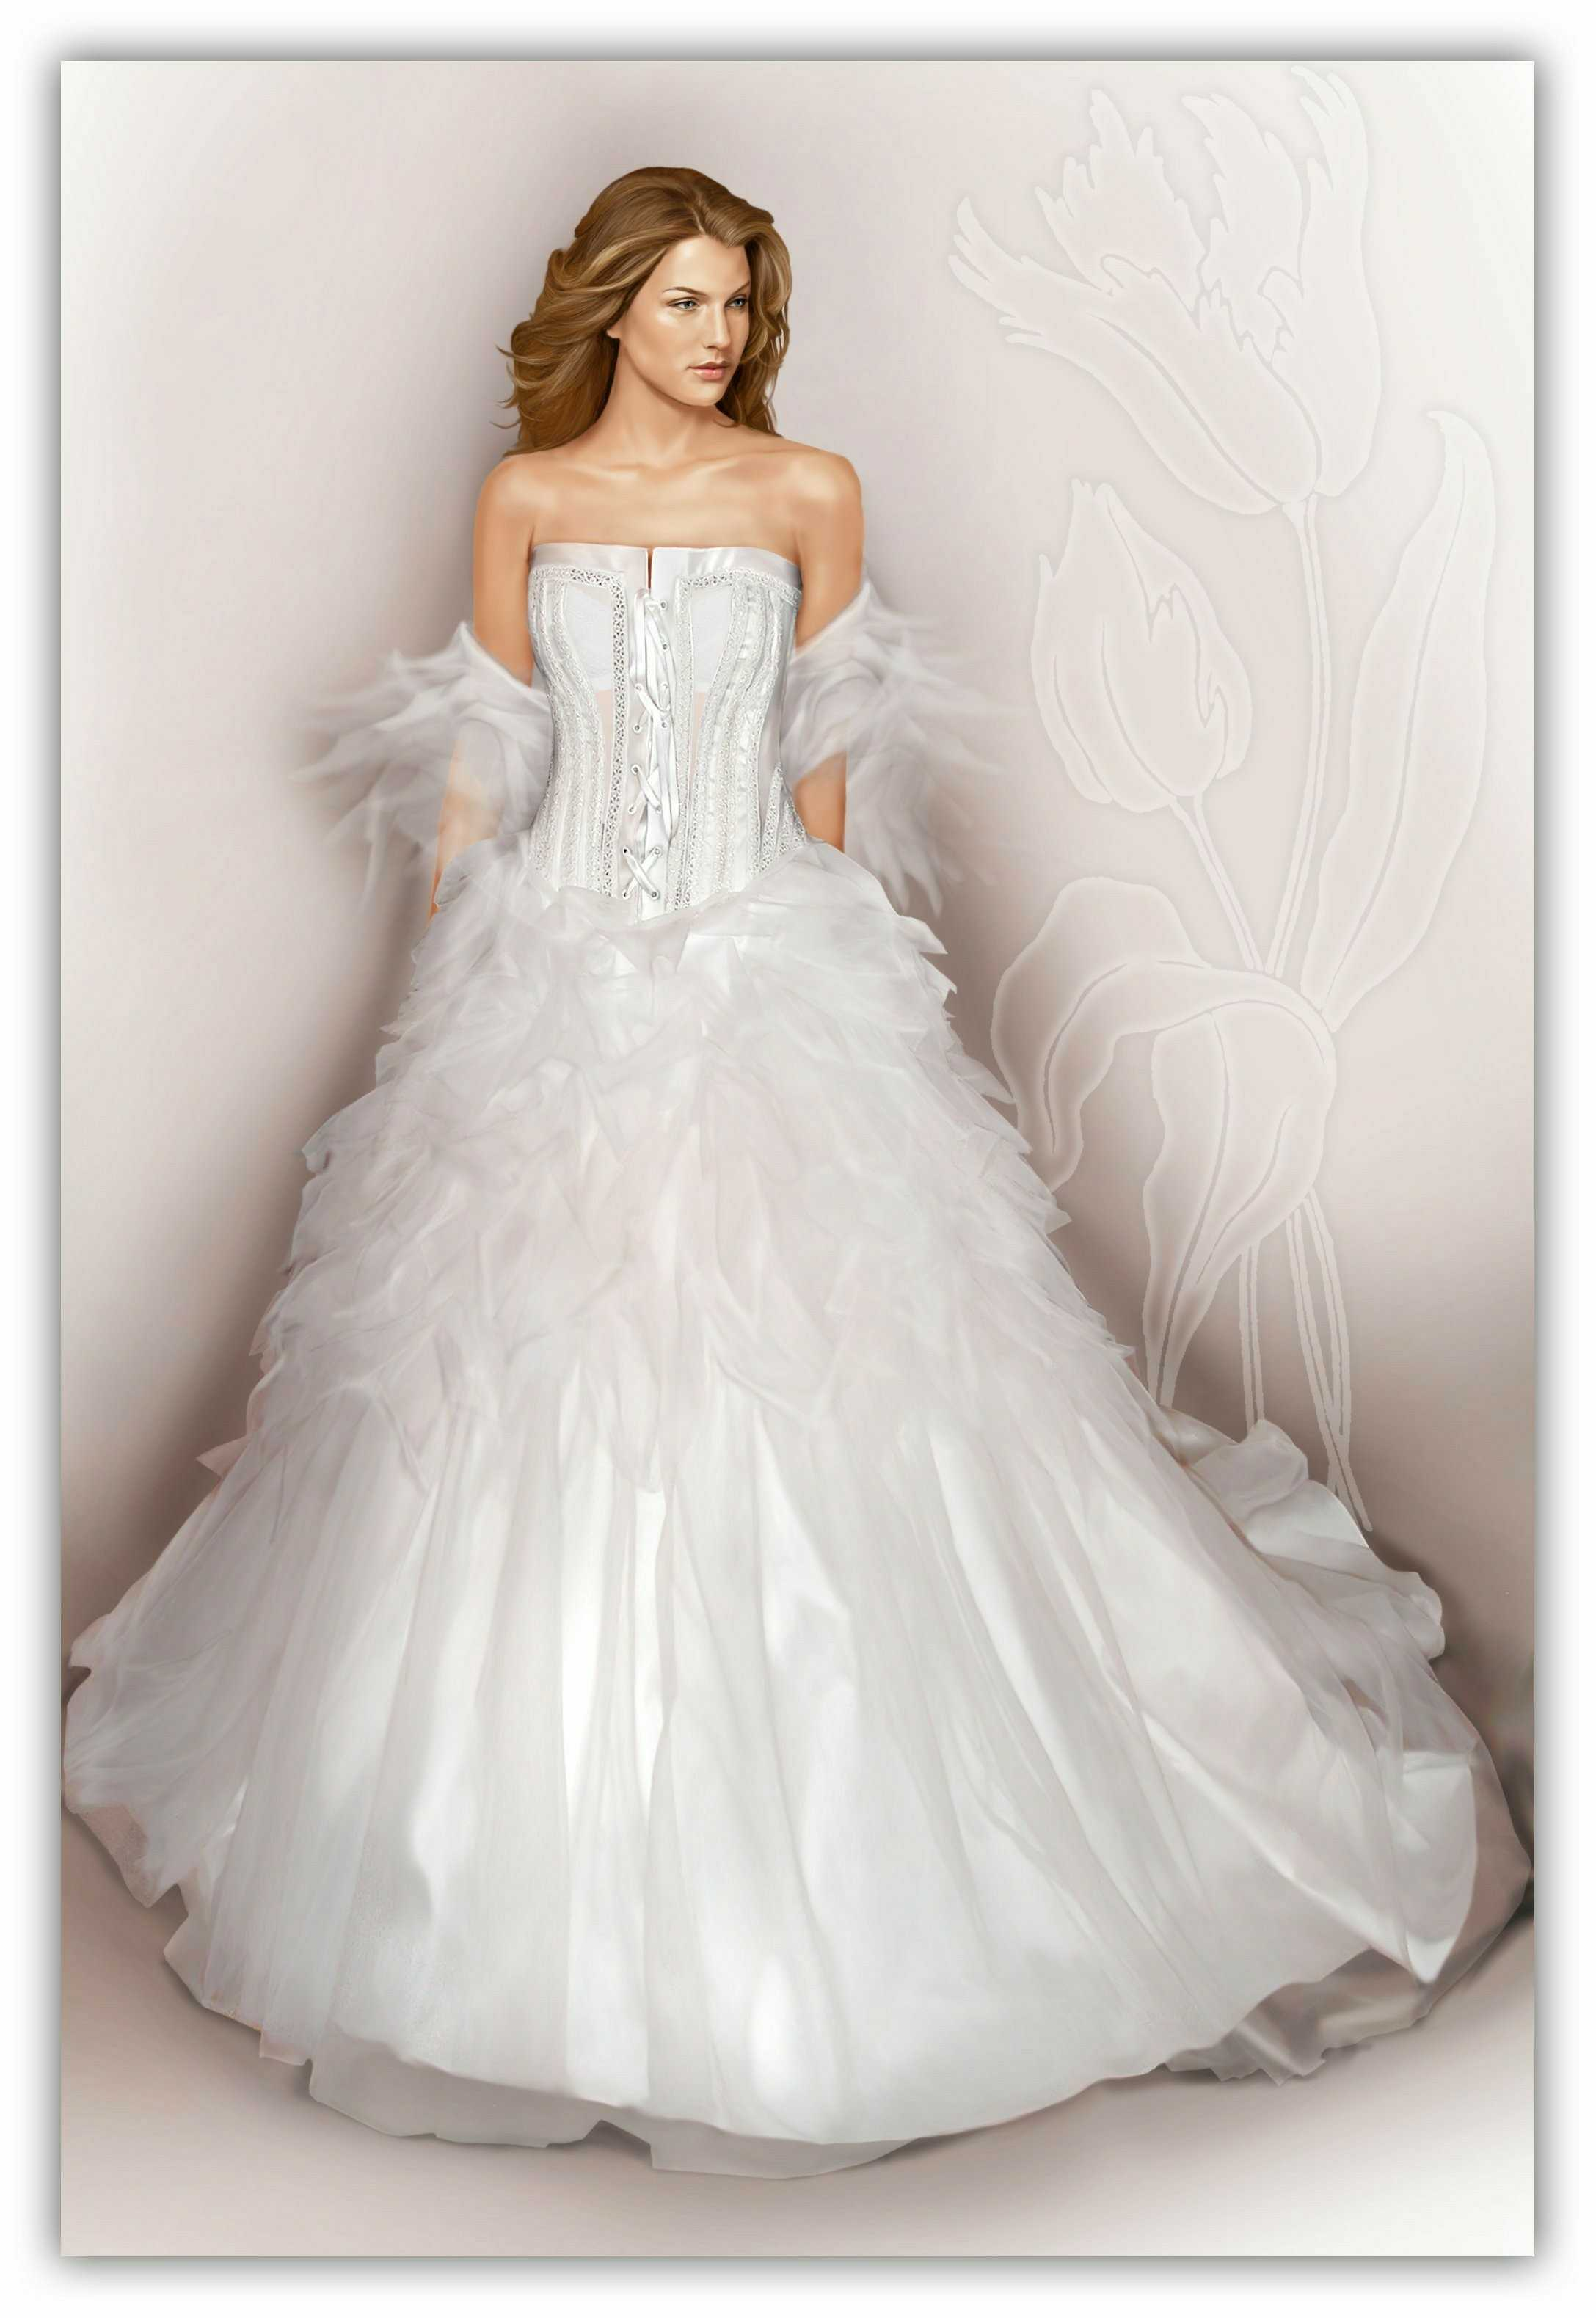 wedding dress patterns free download